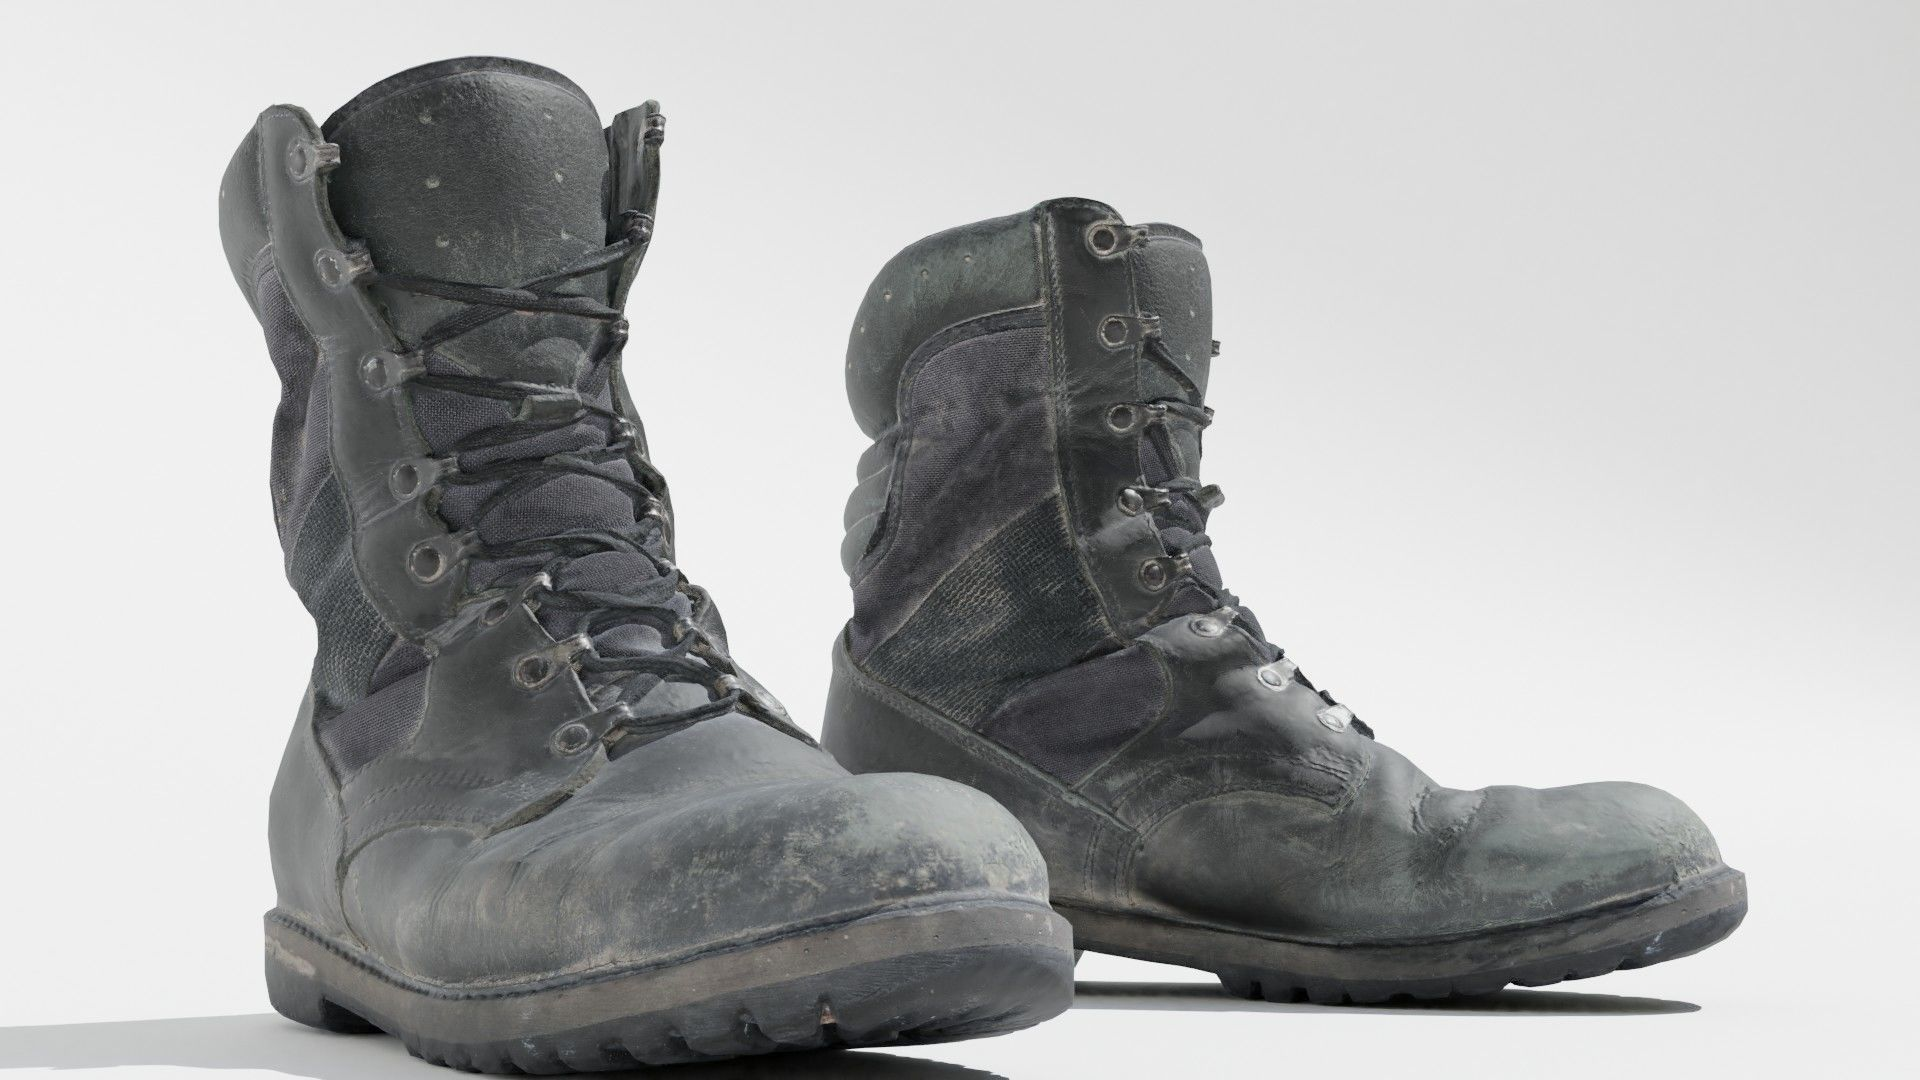 Worn military boots